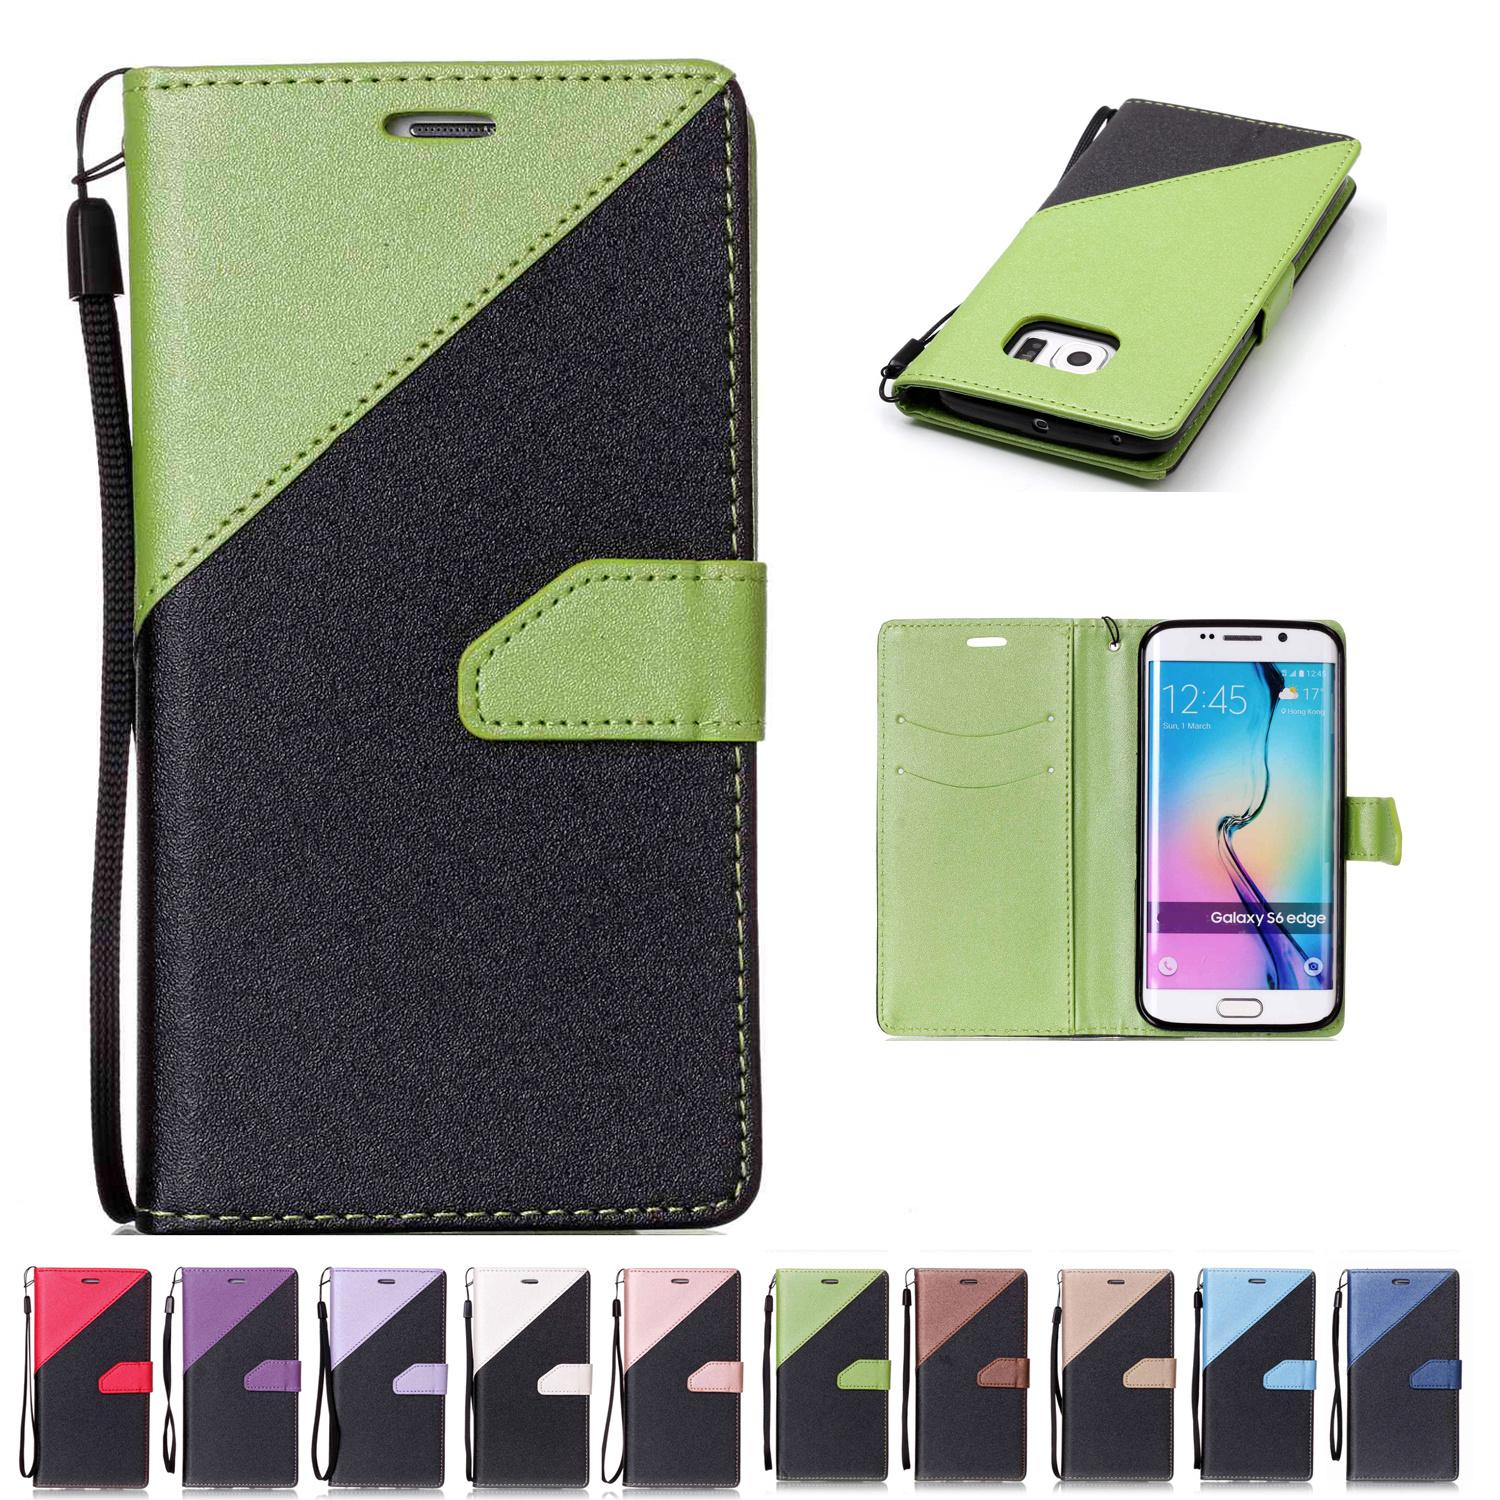 41795e385a7 For Samsung Galaxy S6 Edge Wallets Cases Stand PU Leather With Card Slot  Hand Strap Sand Beach Surface Design Custom Phone Cases Phone Cases From ...